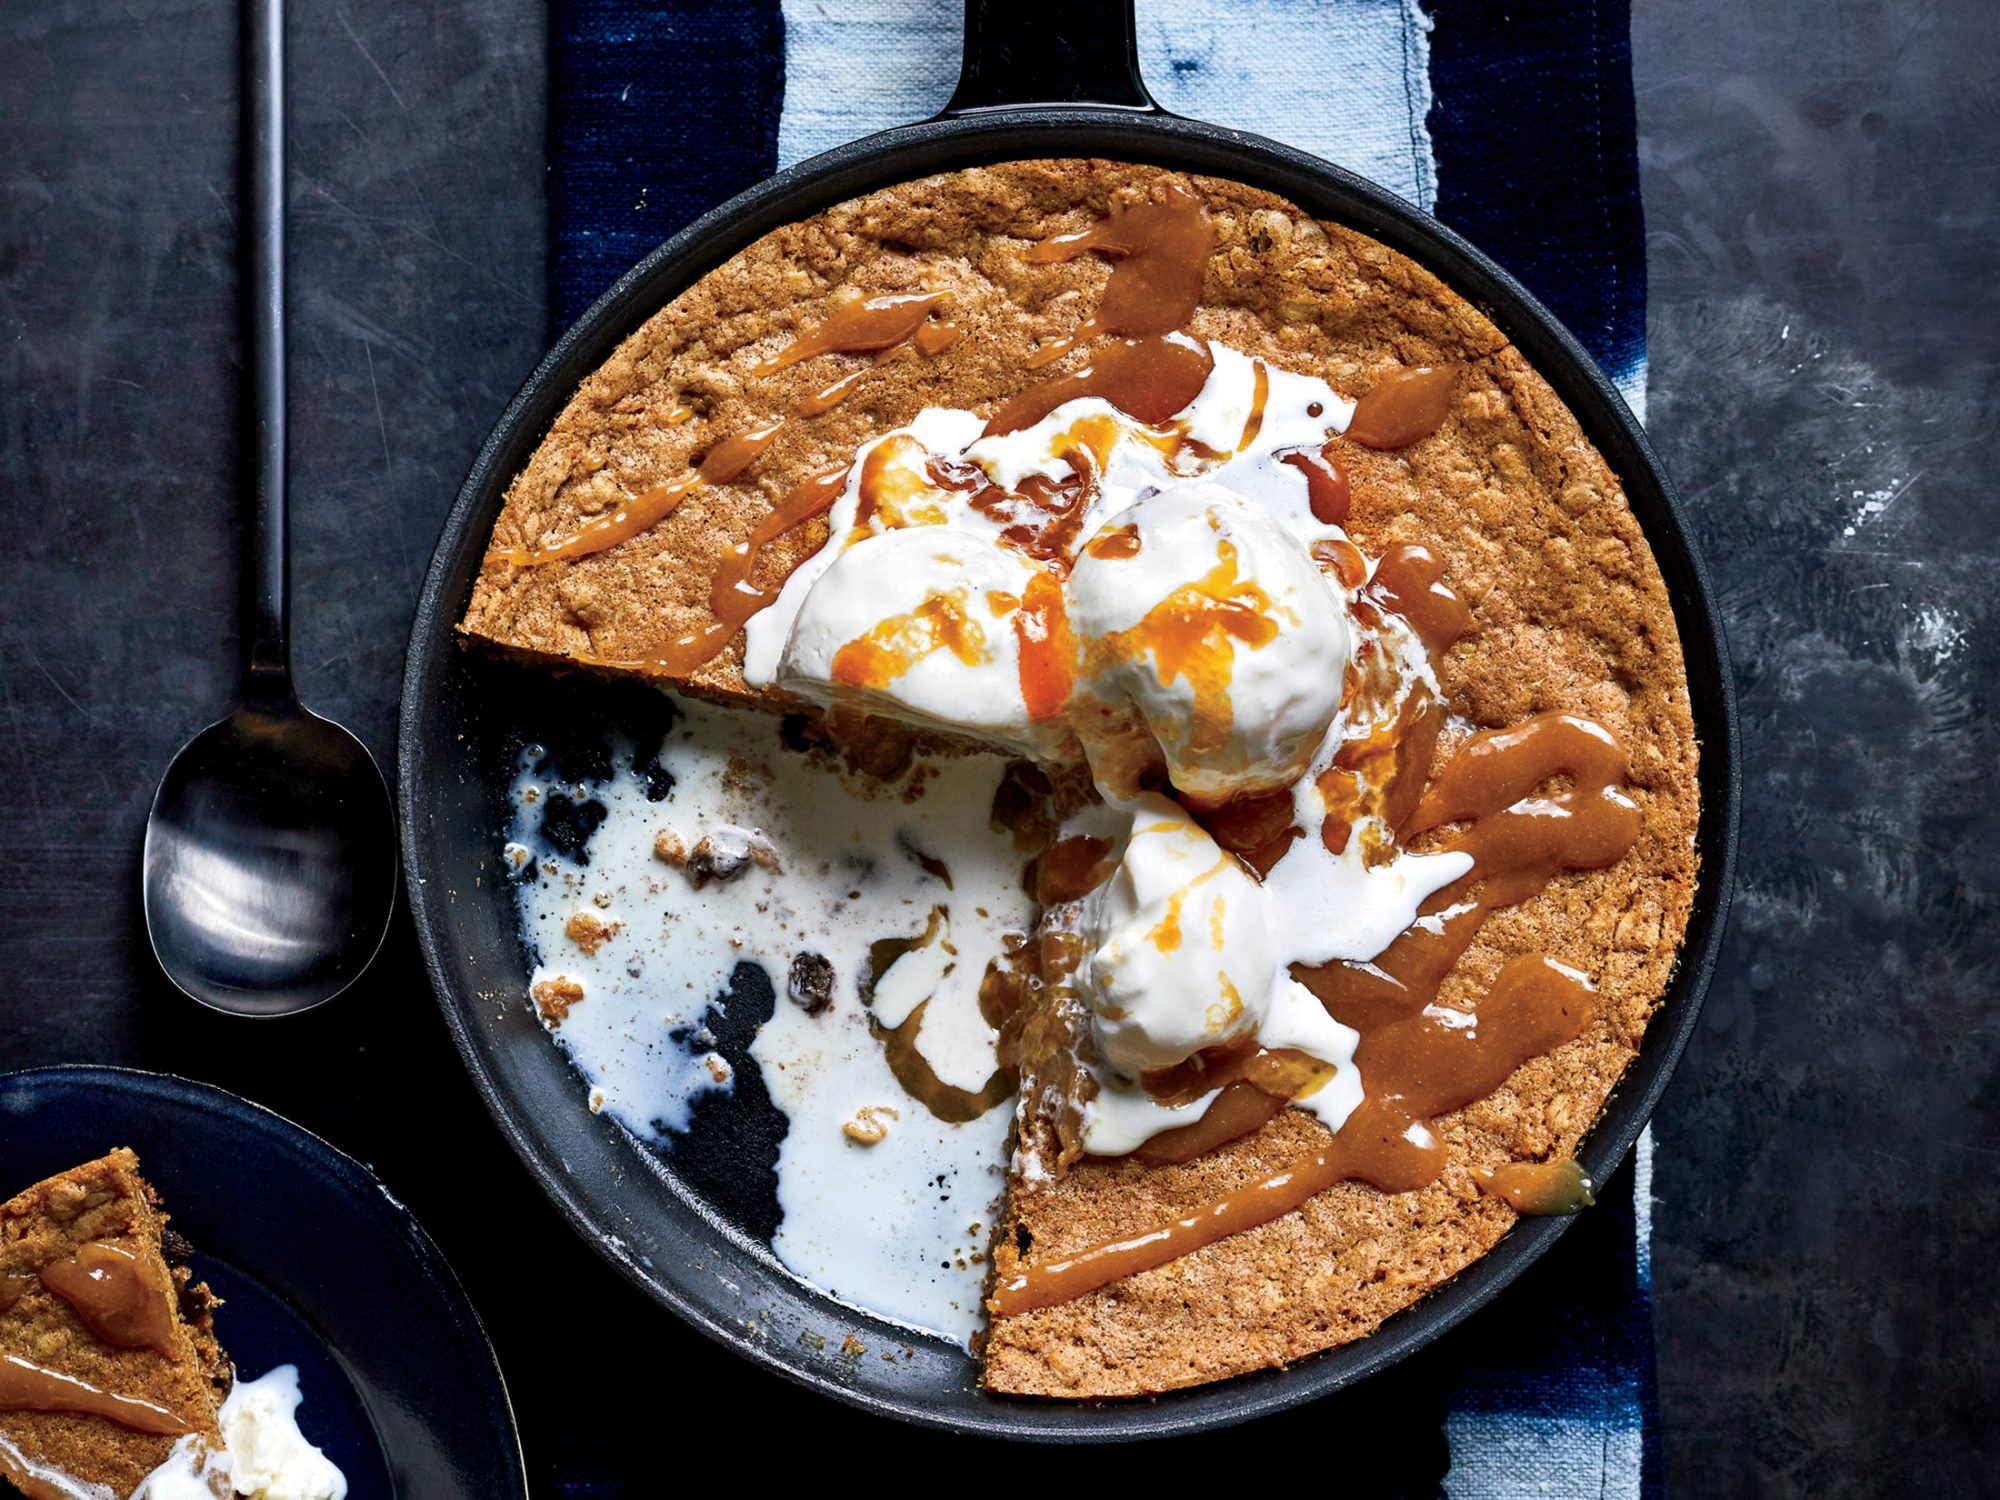 13 Skillet Cookie Recipes for When You Need One BIG Cookie